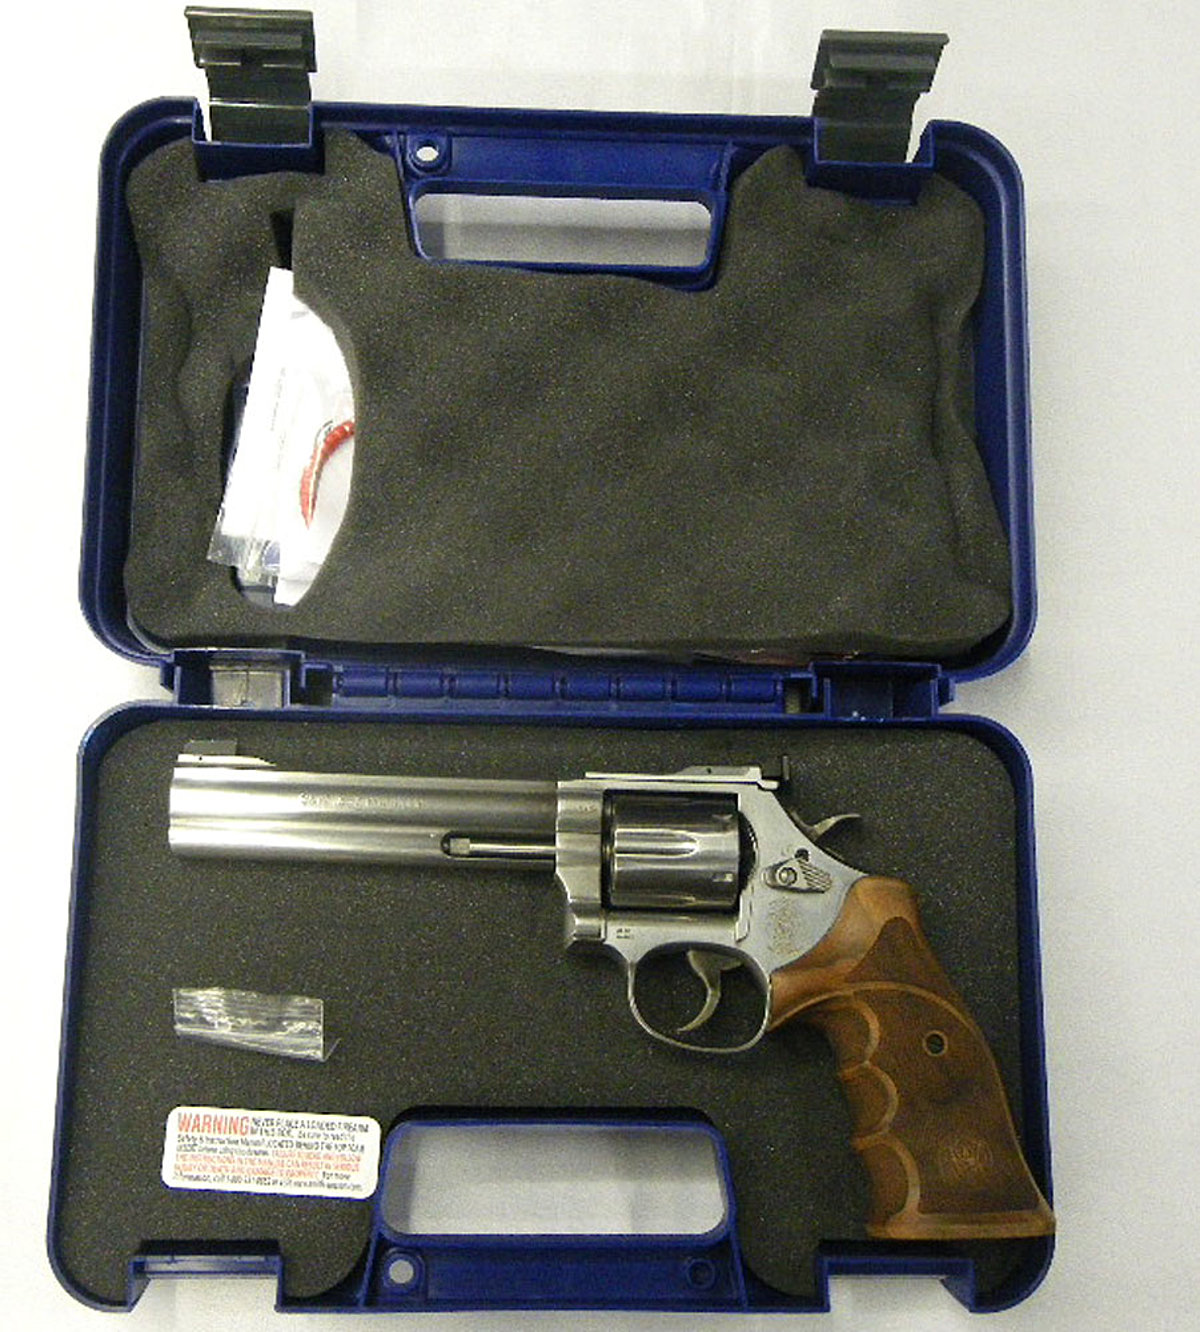 Smith & Wesson 686 Target Champion Deluxe 6